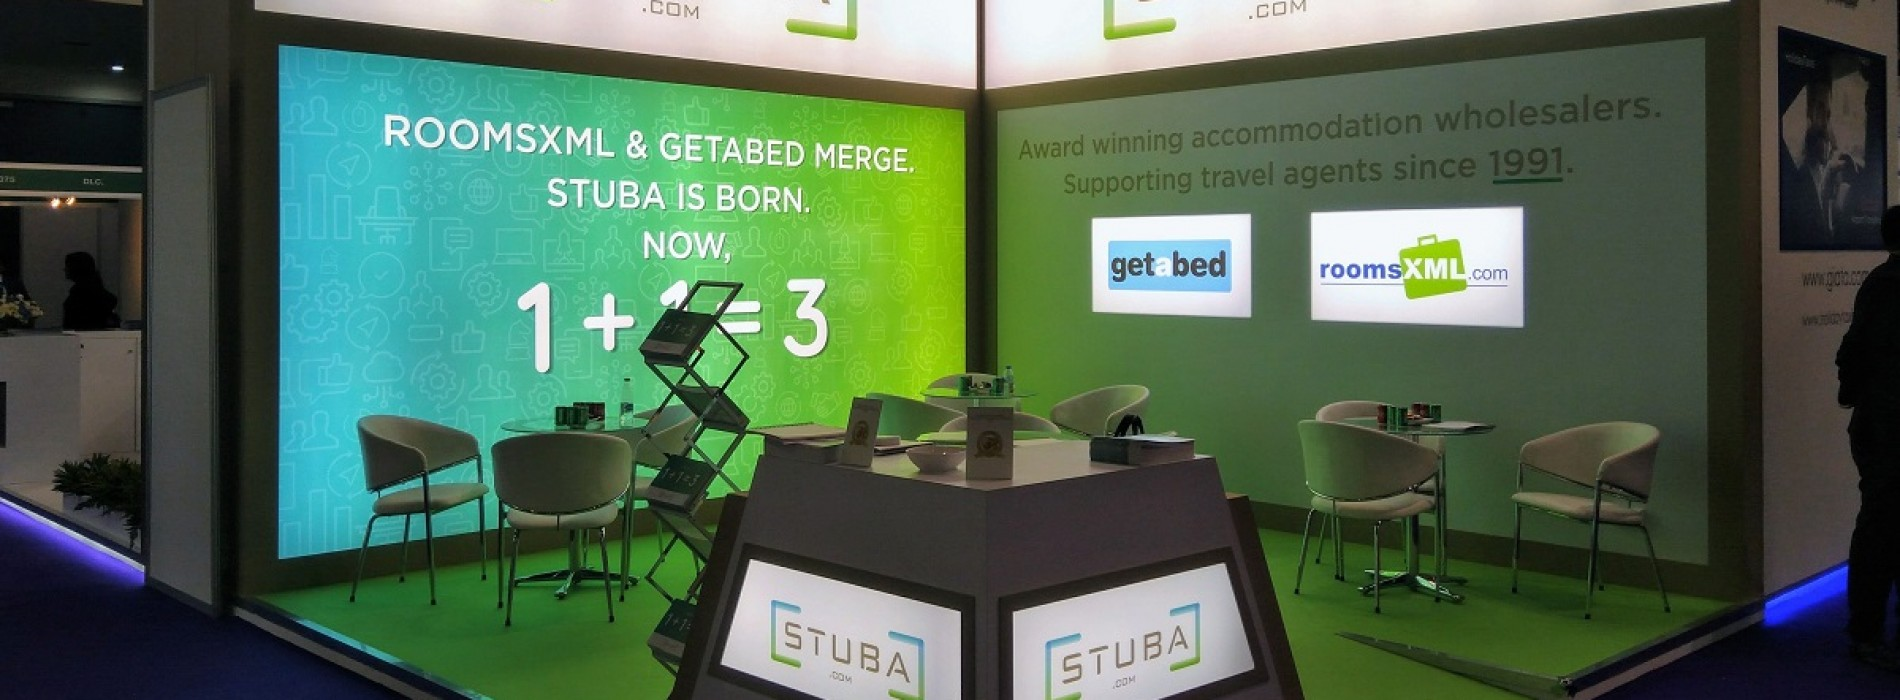 Stuba officially launched by roomsXML and getabed